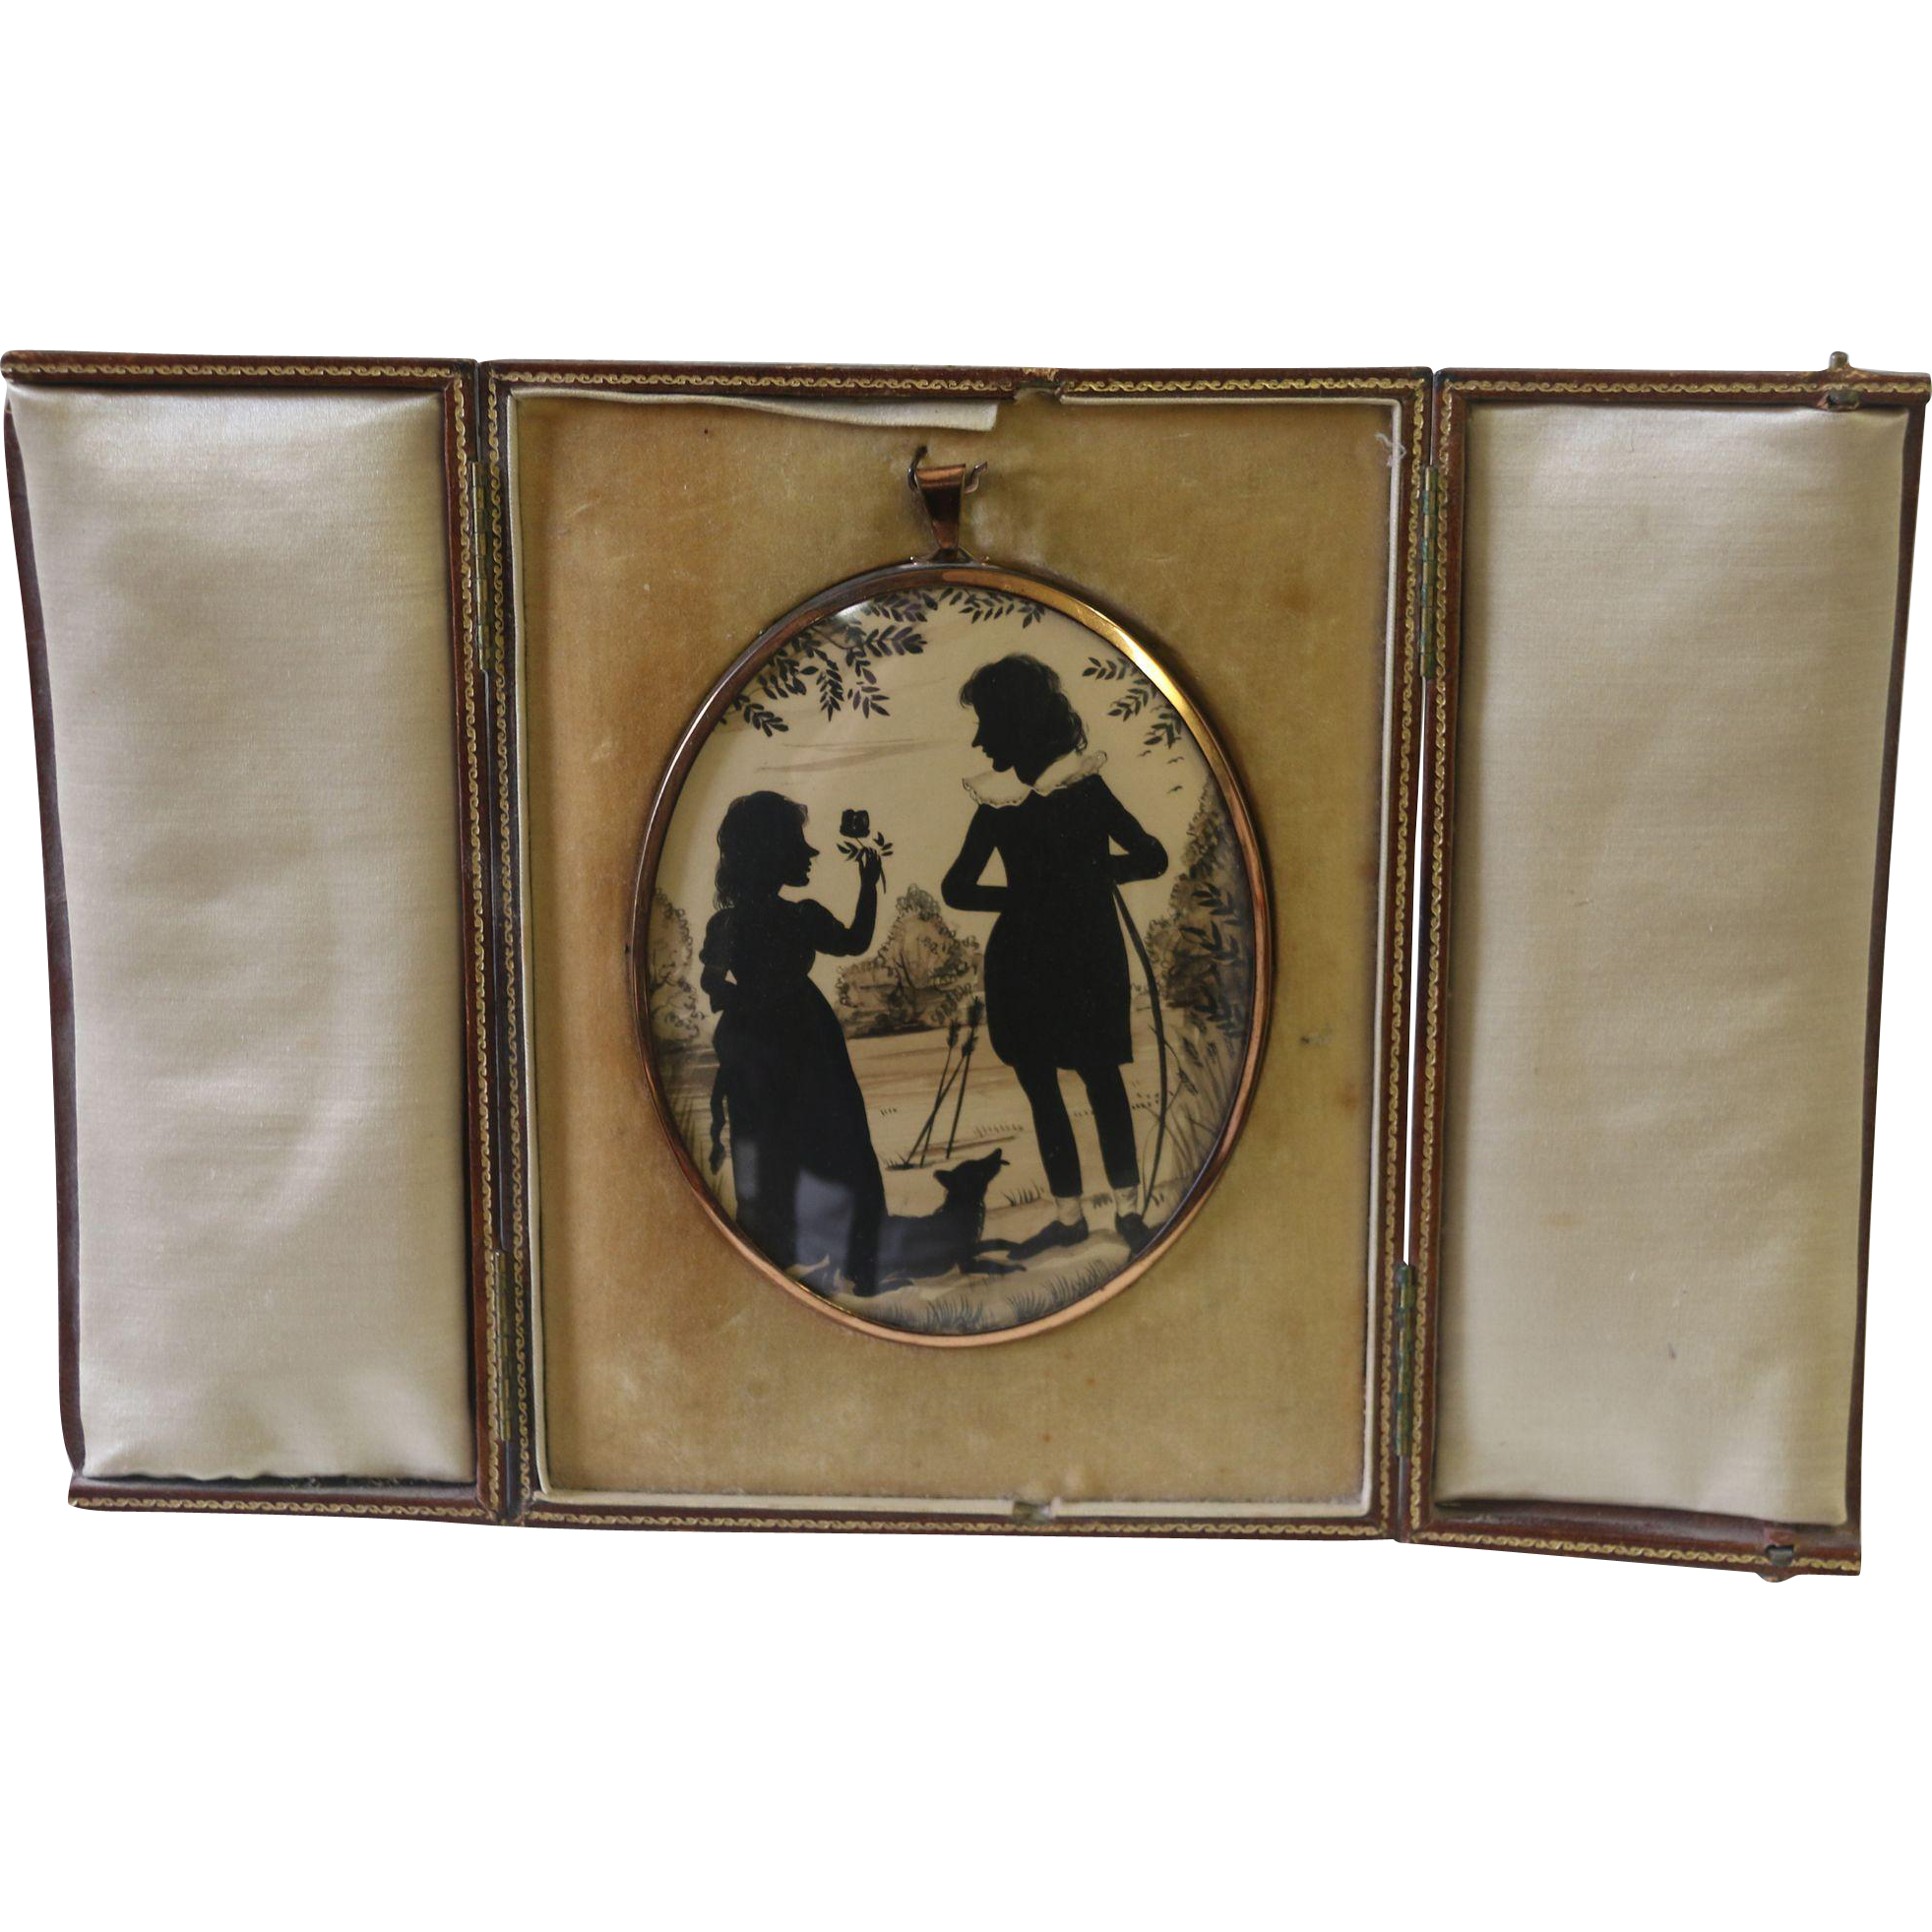 Mid 19th Century Painted Silhouette of a Beau, His Girl & Dog Hung in a Leather Folio Frame